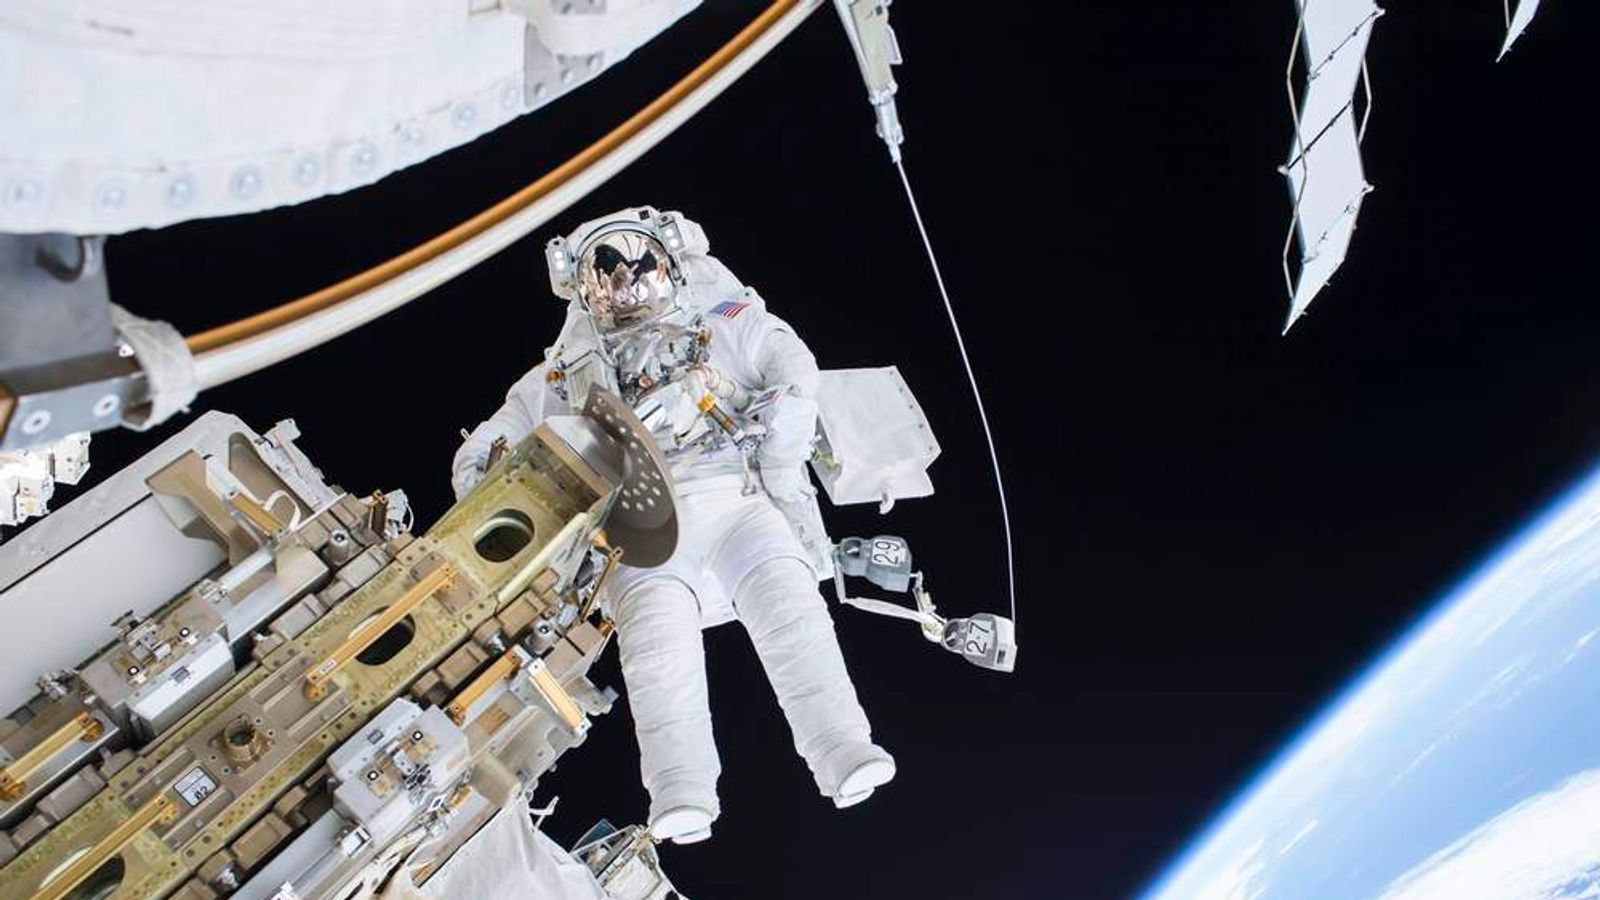 Expedition 46 Flight Engineer Tim Kopra performs a spacewalk outside the International Space Station in this NASA handout photo